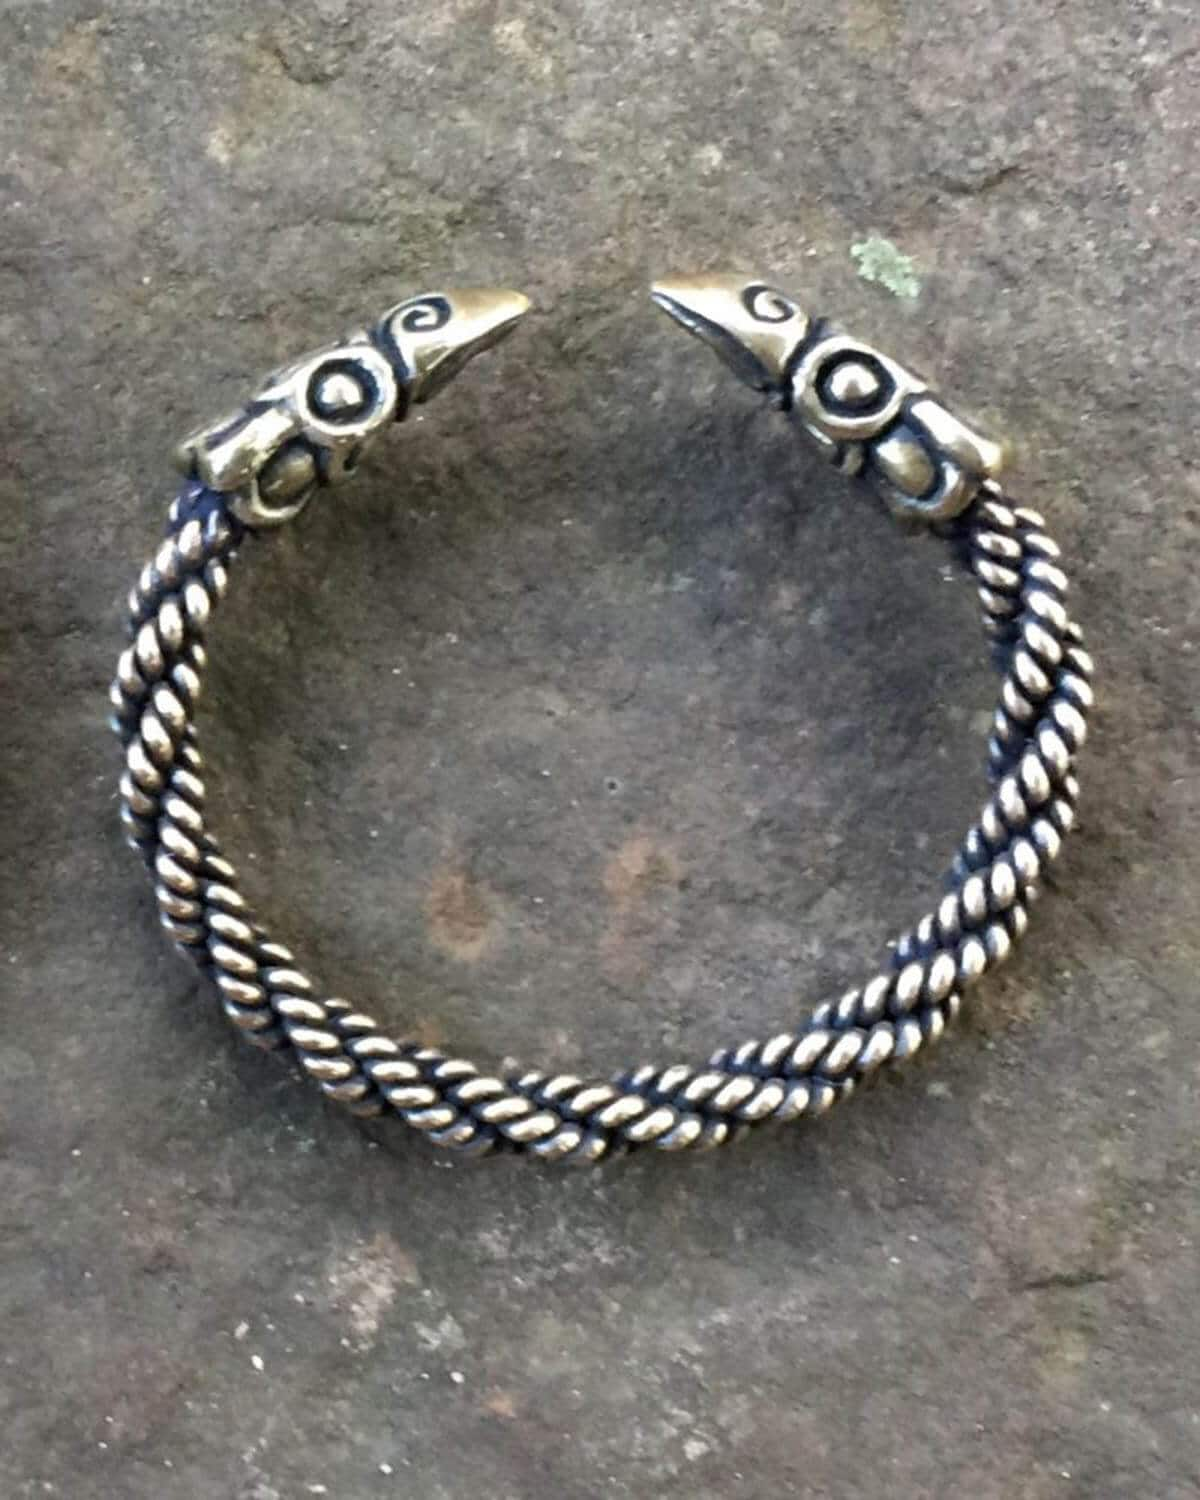 Raven Bracelet Light Braid